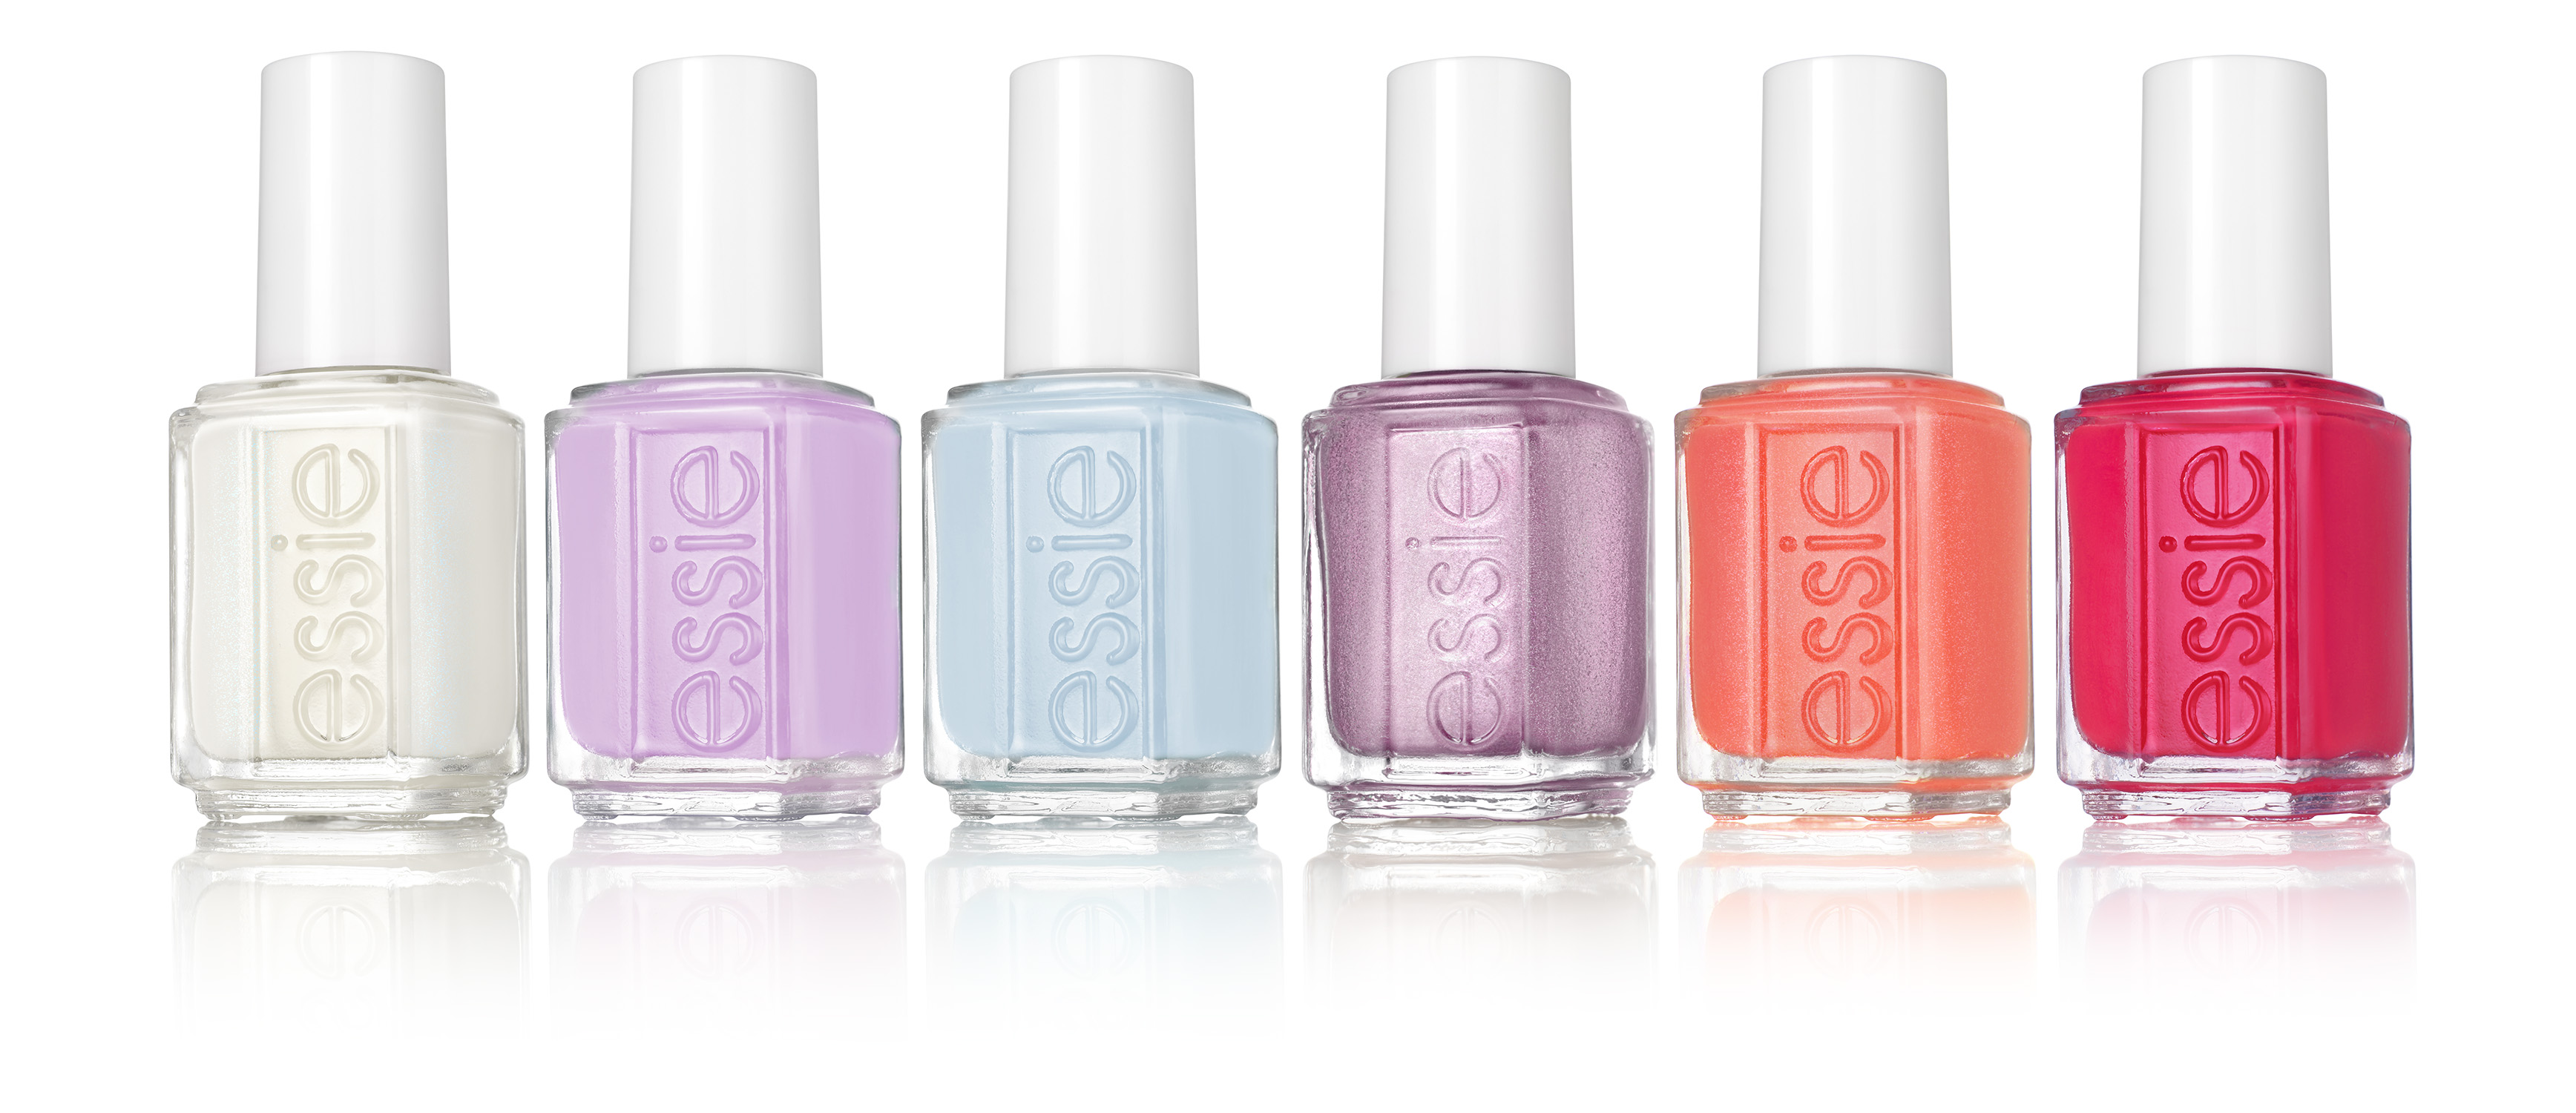 Give Your Clients Parisian Chic Nails With Essie - Nailpro